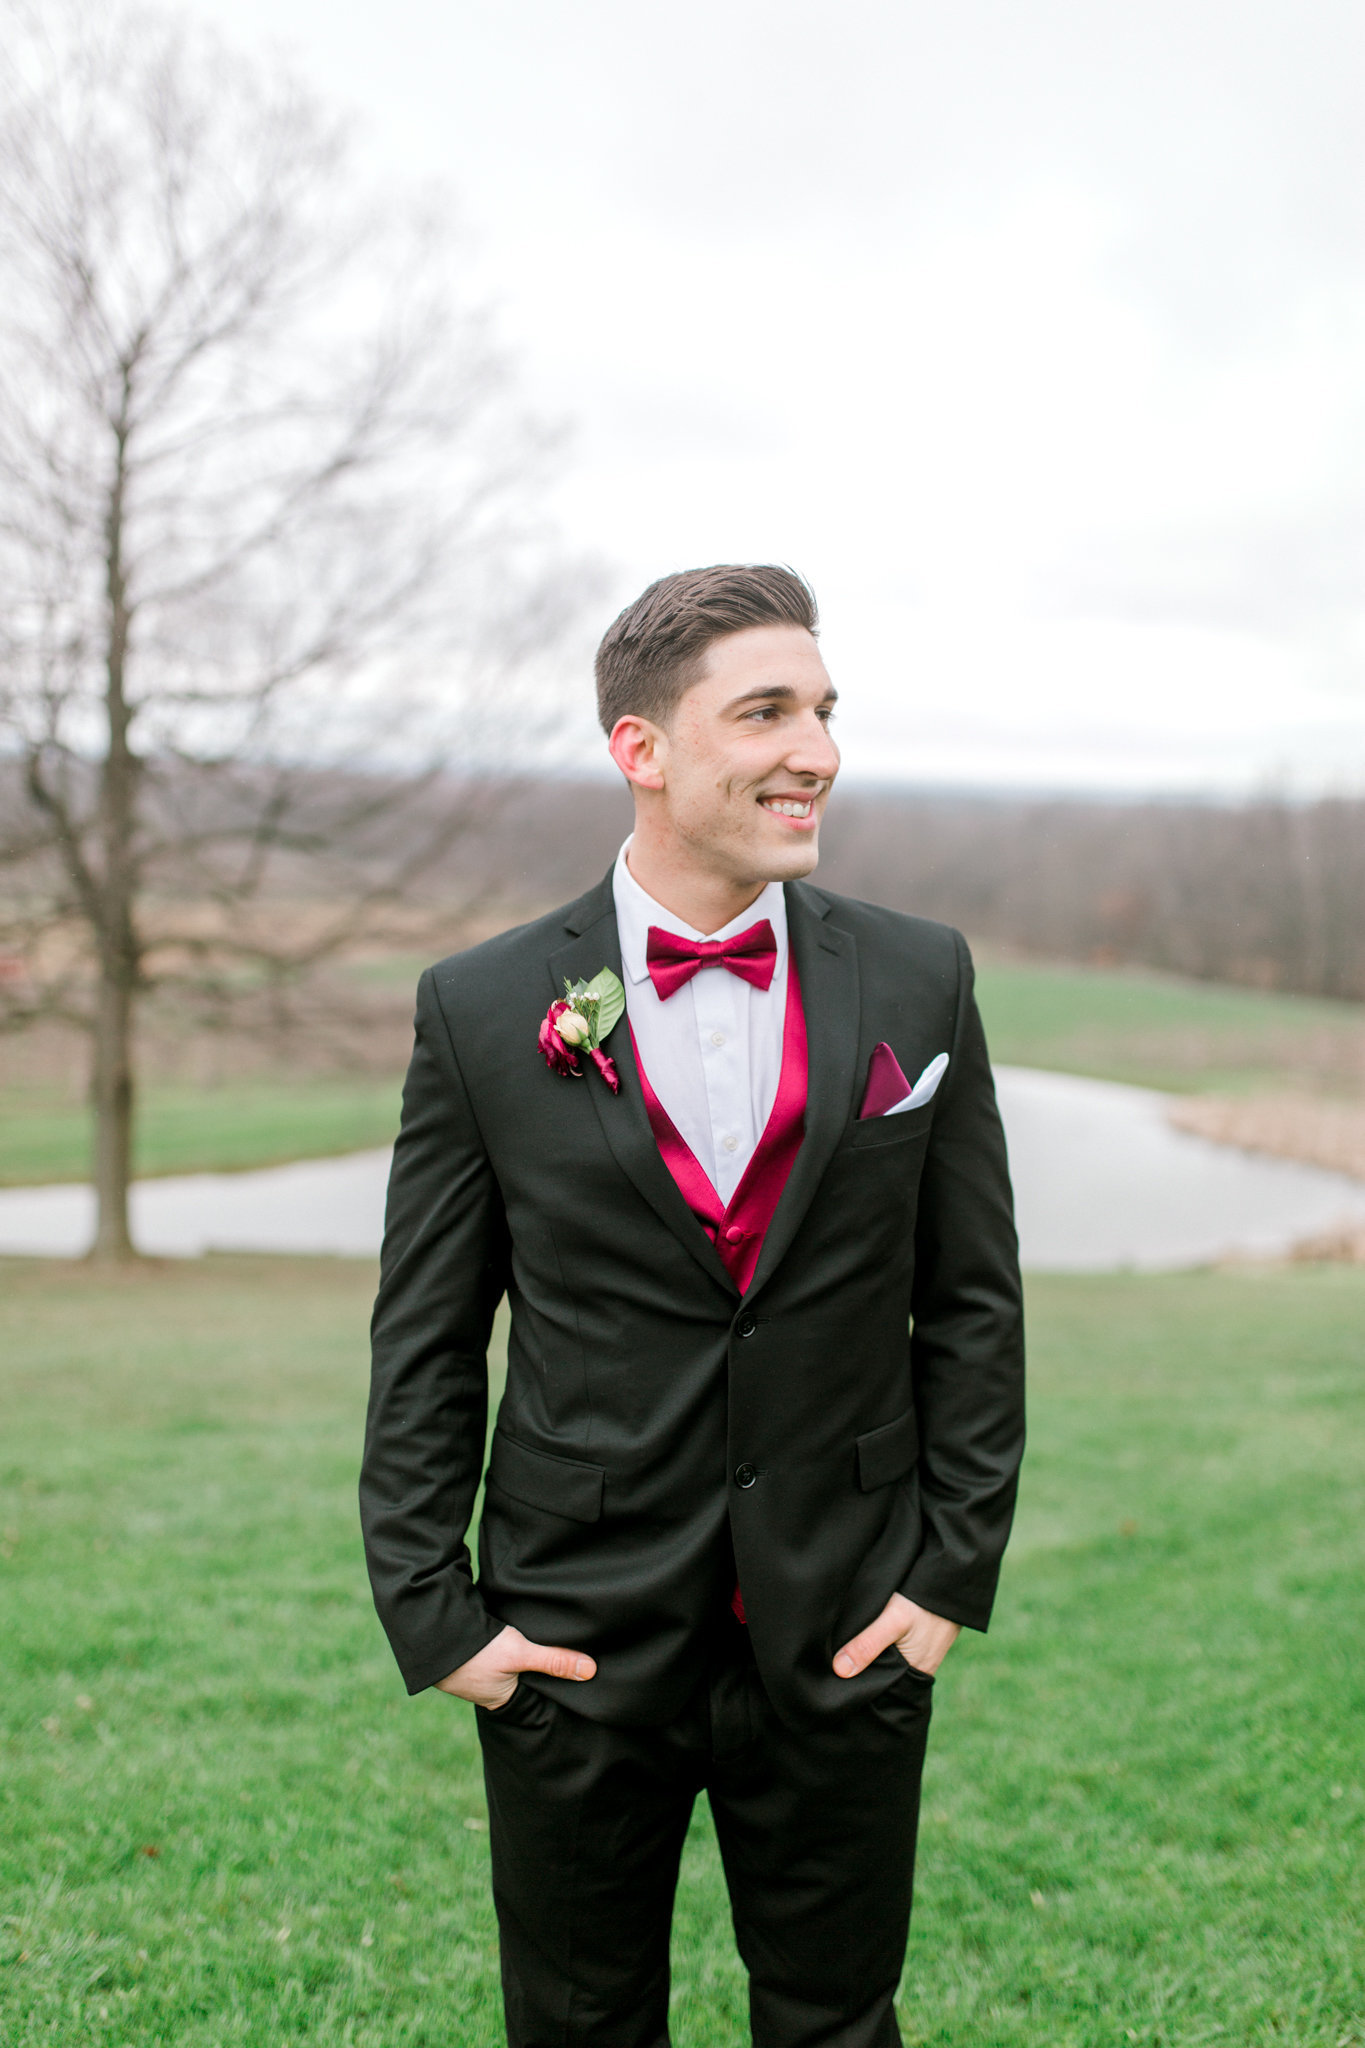 cleveland wedding photographers Austin and rachel -8518